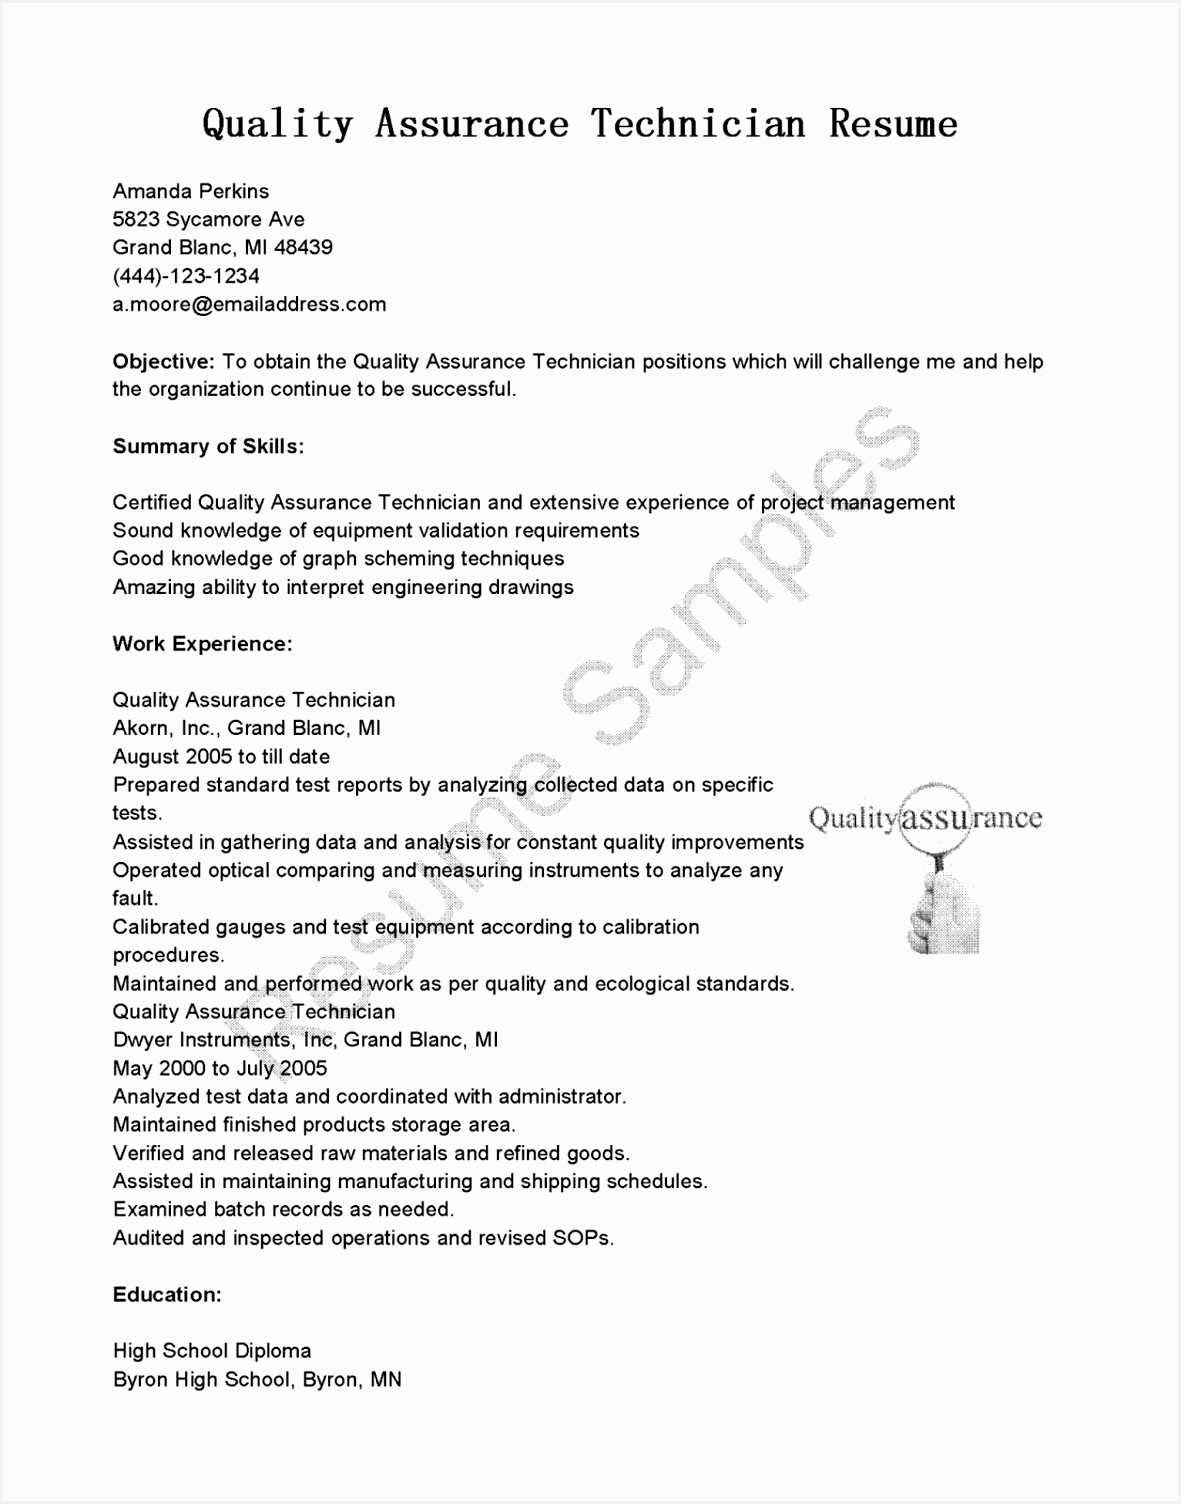 Quality Control Inspector Resume Sample Kuaaq Lovely Precision Inspector Resume New Quality Inspector Resume Superb Qa Of Quality Control Inspector Resume Sample S6uhu Lovely Resumes Qualitytrol Resume Technician Objective Sample Pdf Inspector